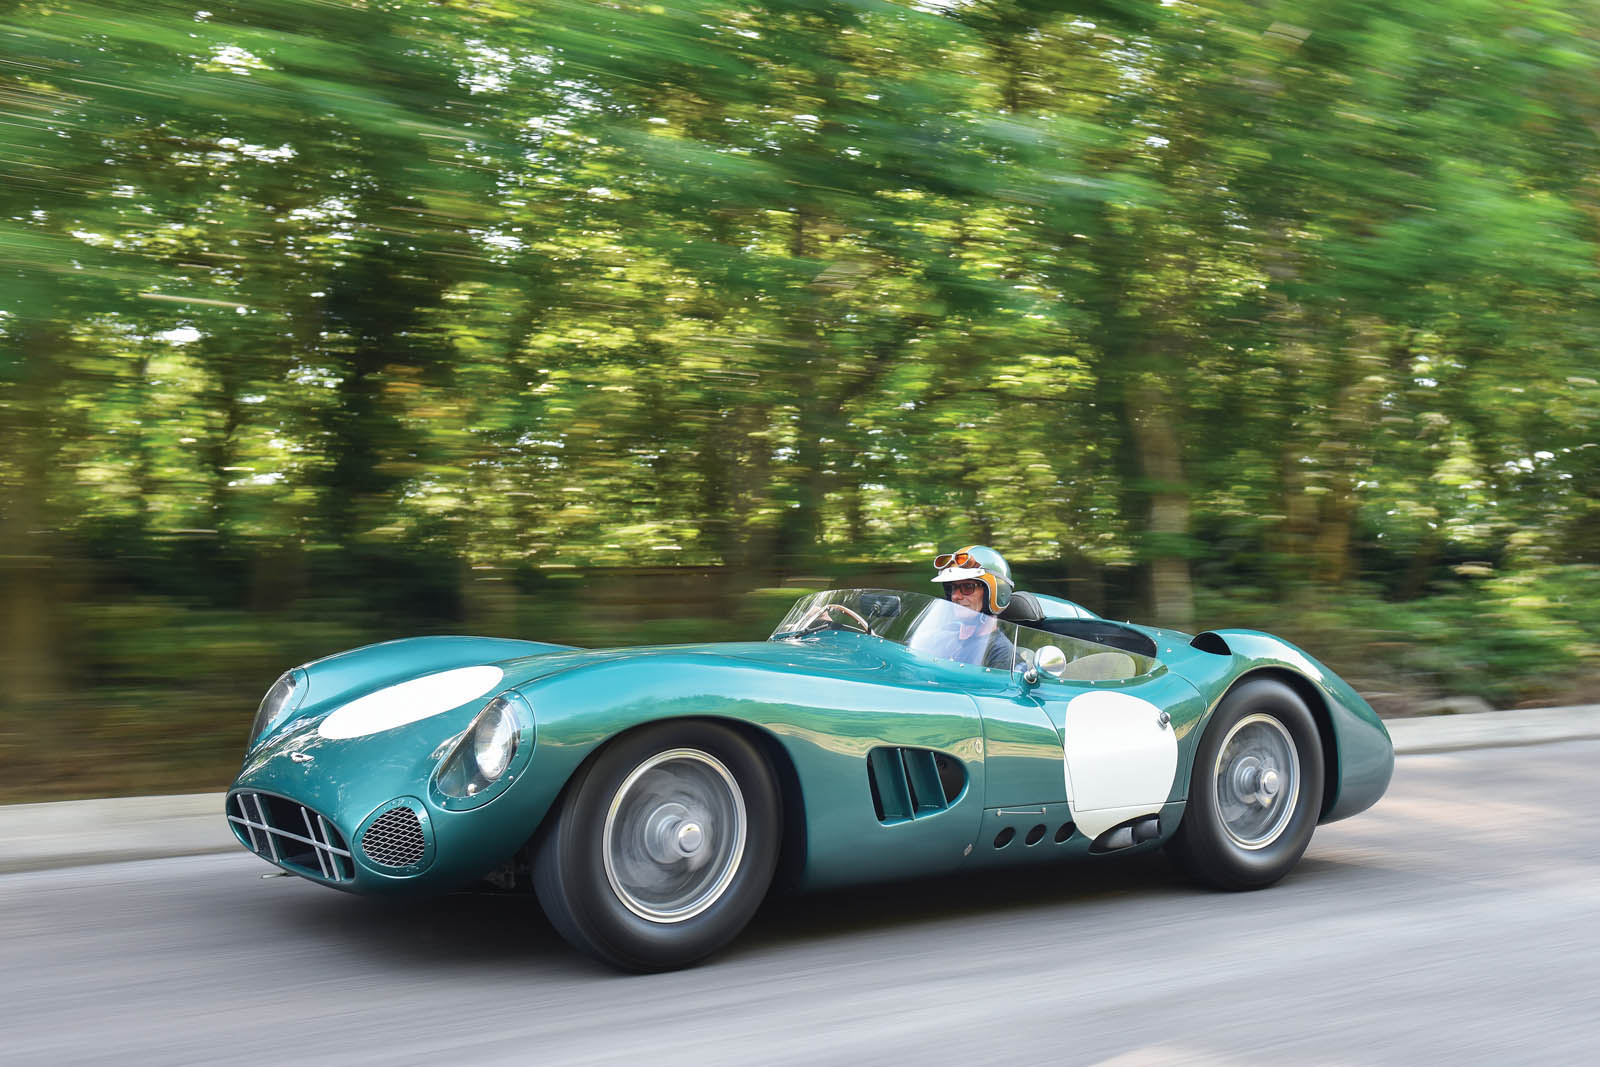 1959 Nurburgring 1000km Winning Aston Martin Dbr1 Is Looking For A New Owner Autoevolution